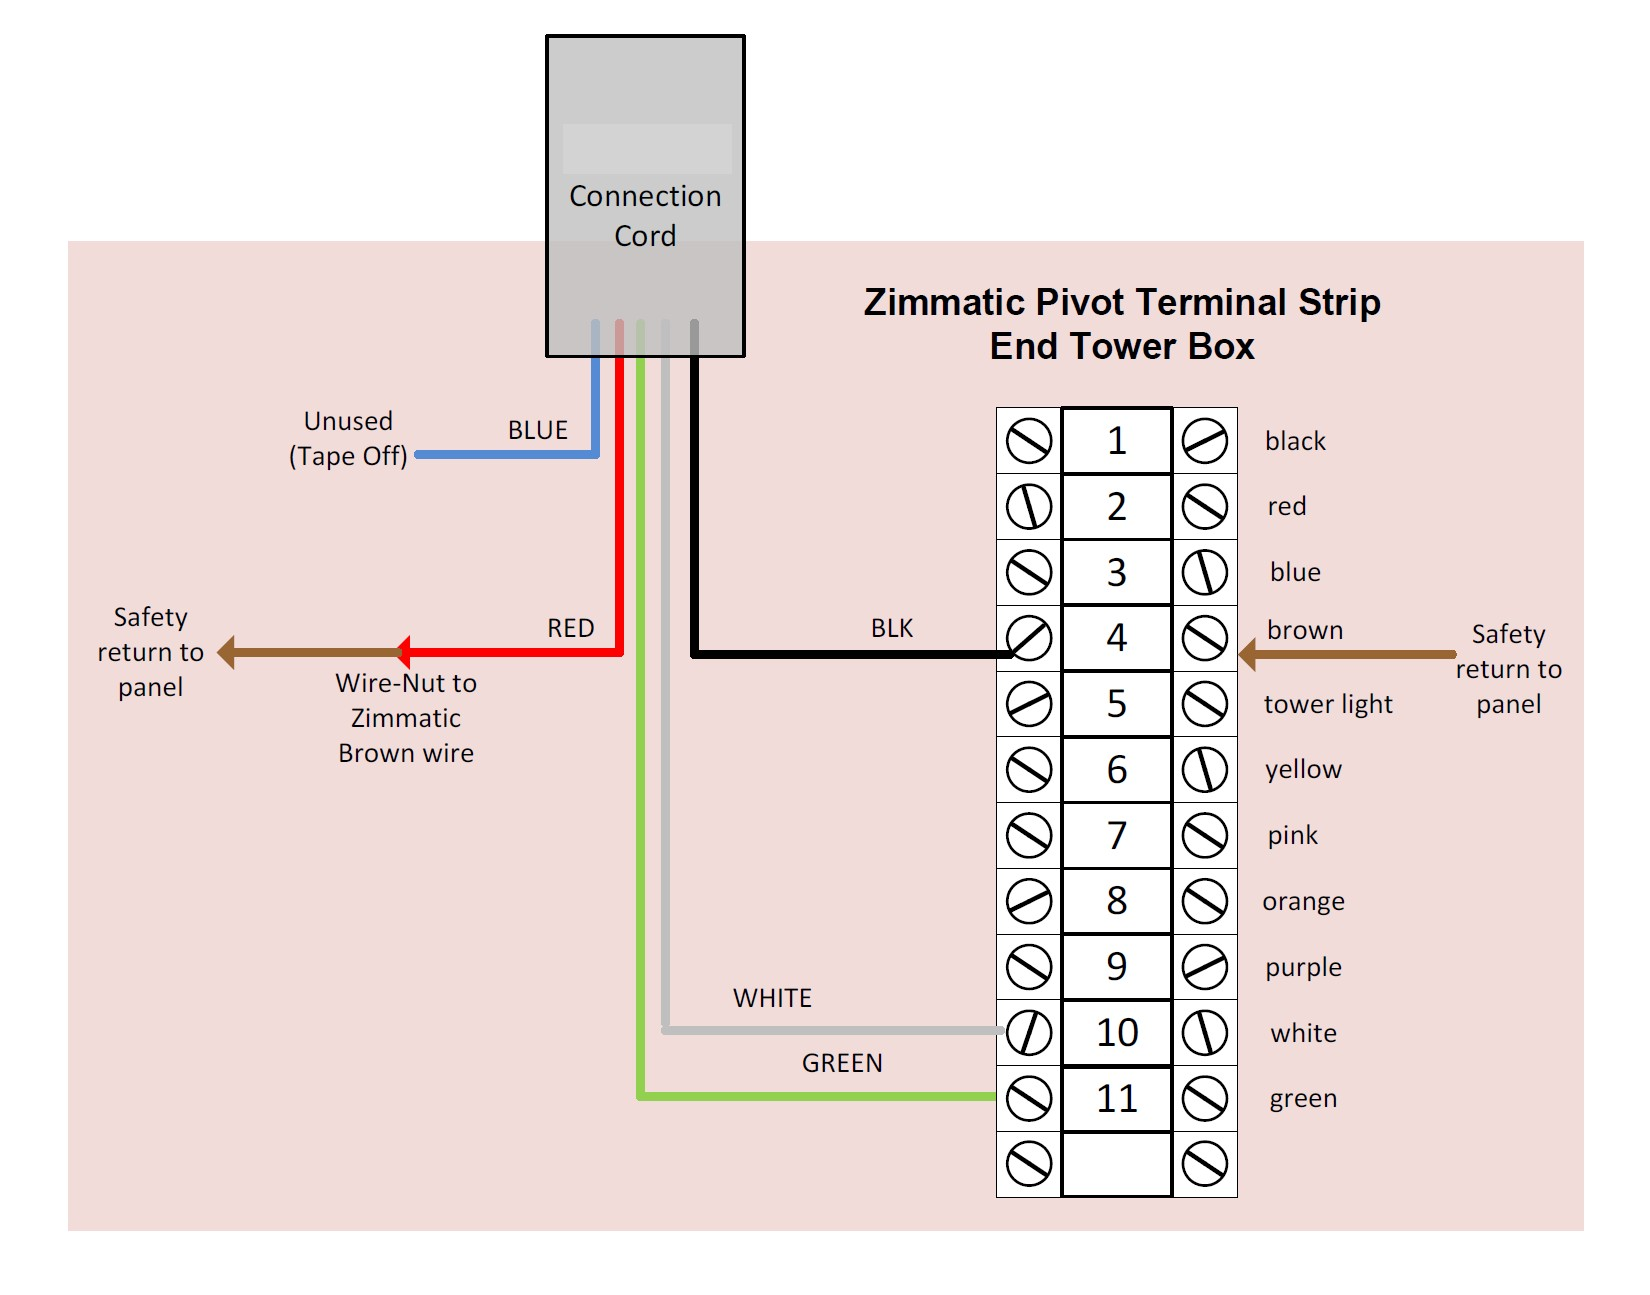 zimmatic wiring diagram auto electrical wiring diagram u2022 rh 6weeks co uk